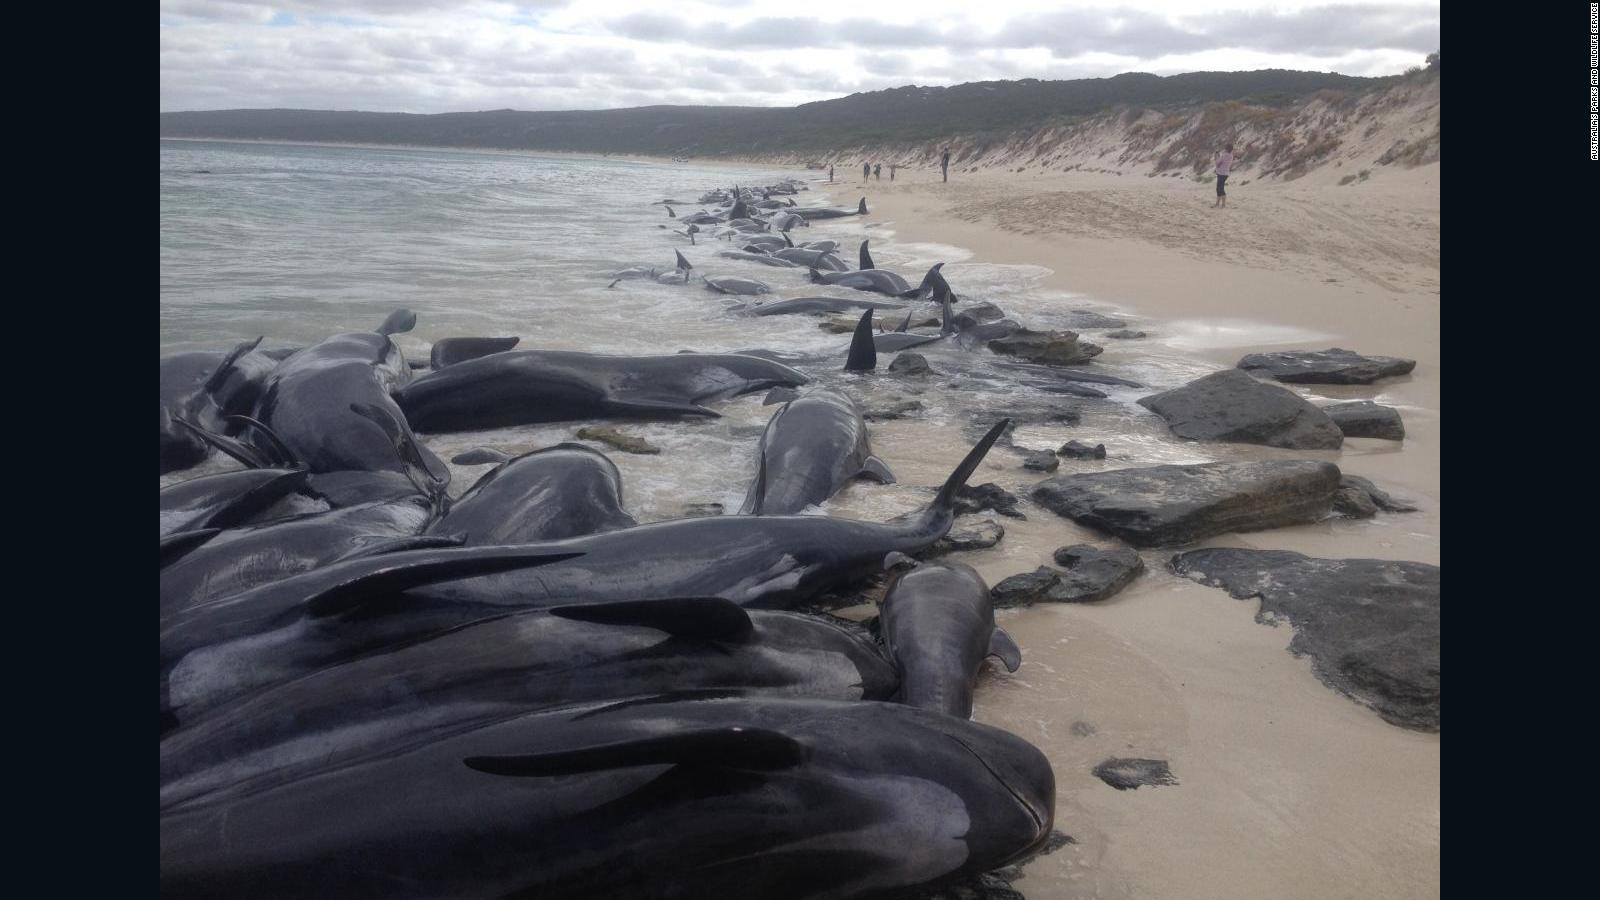 Rescuers scramble to help beached whales after mass stranding in Australia a44d907a9a3